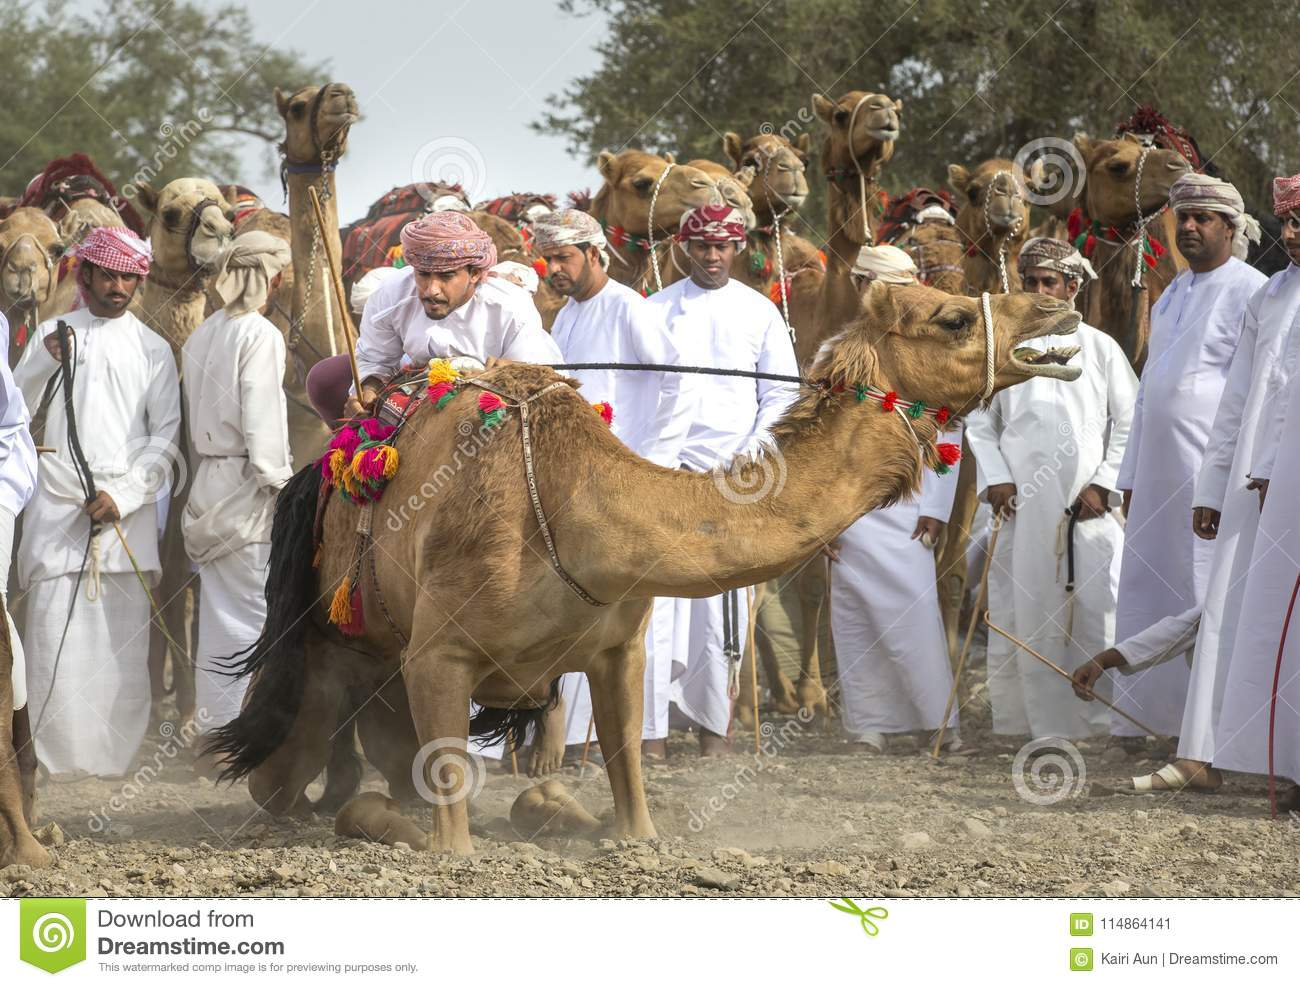 Omani men getting ready to race their camels on a dusty countrys